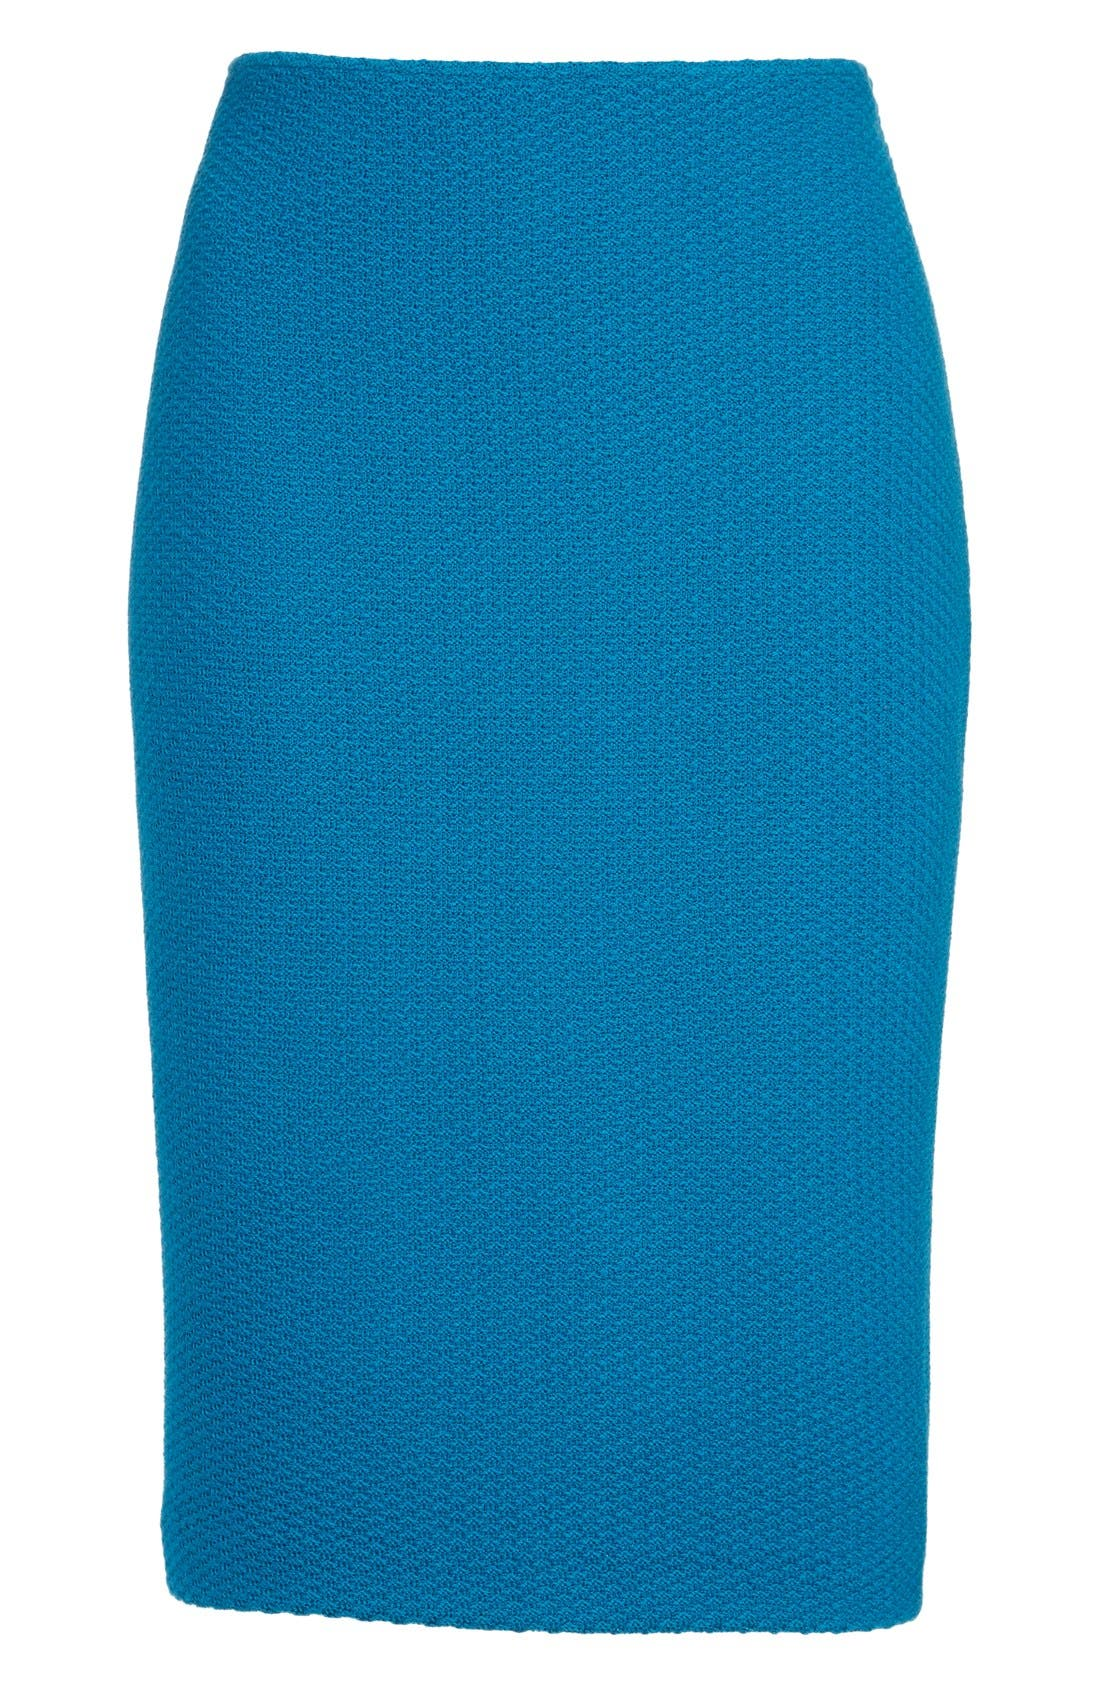 Alternate Image 4  - St. John Collection Textural Twill Pencil Skirt